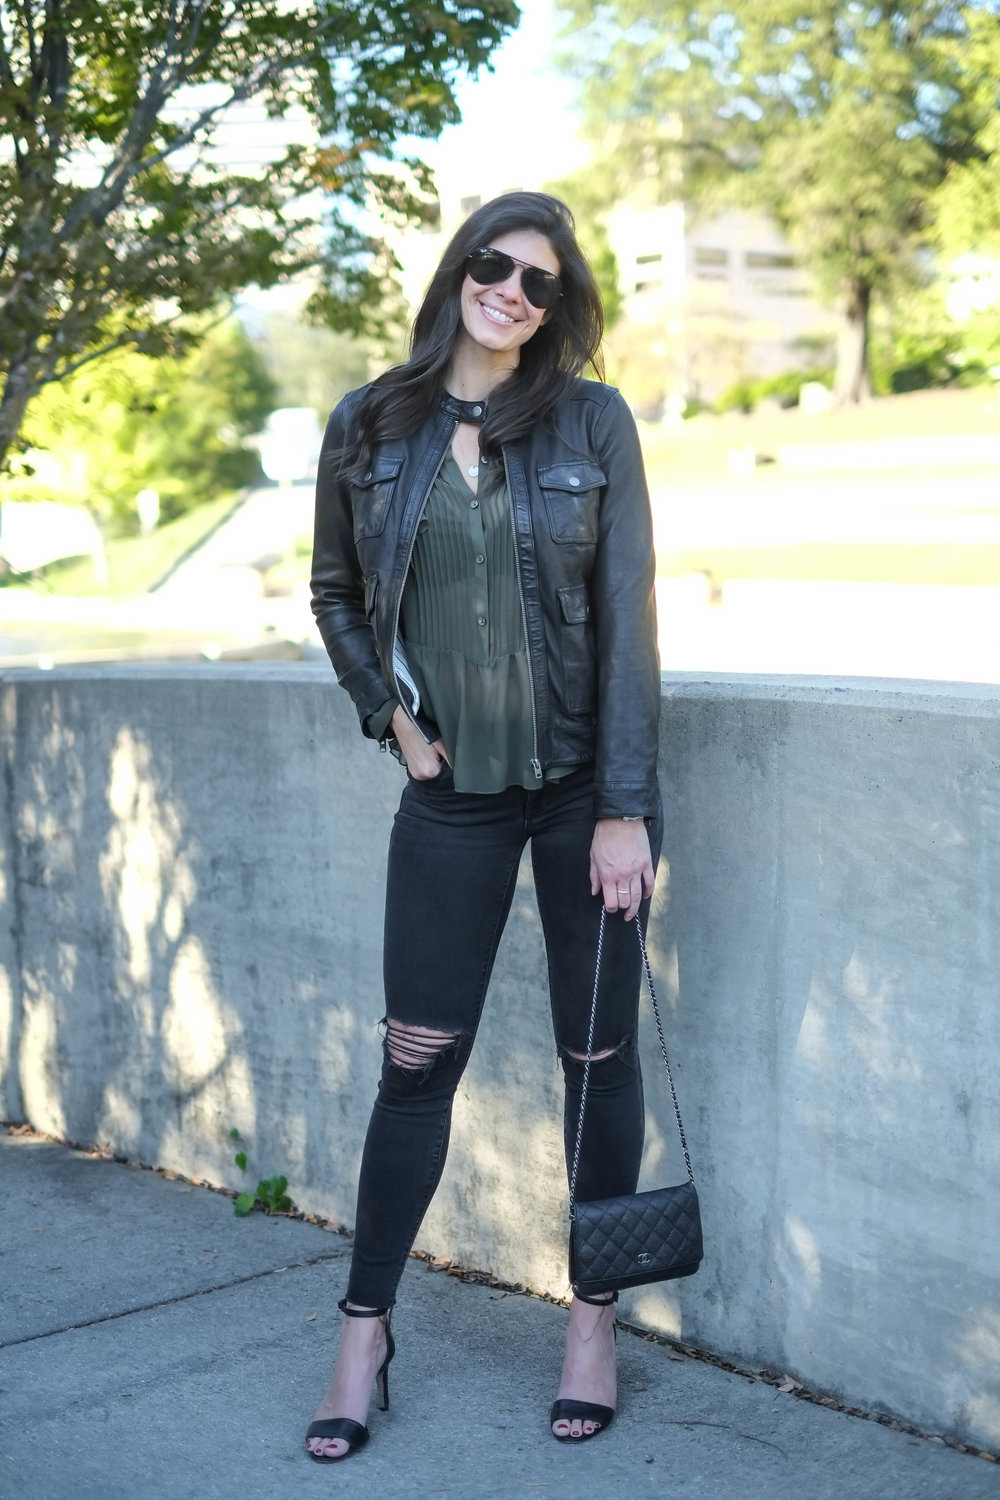 casual-chic-street-style-lauren-schwaiger-outfit-inspiration.jpg